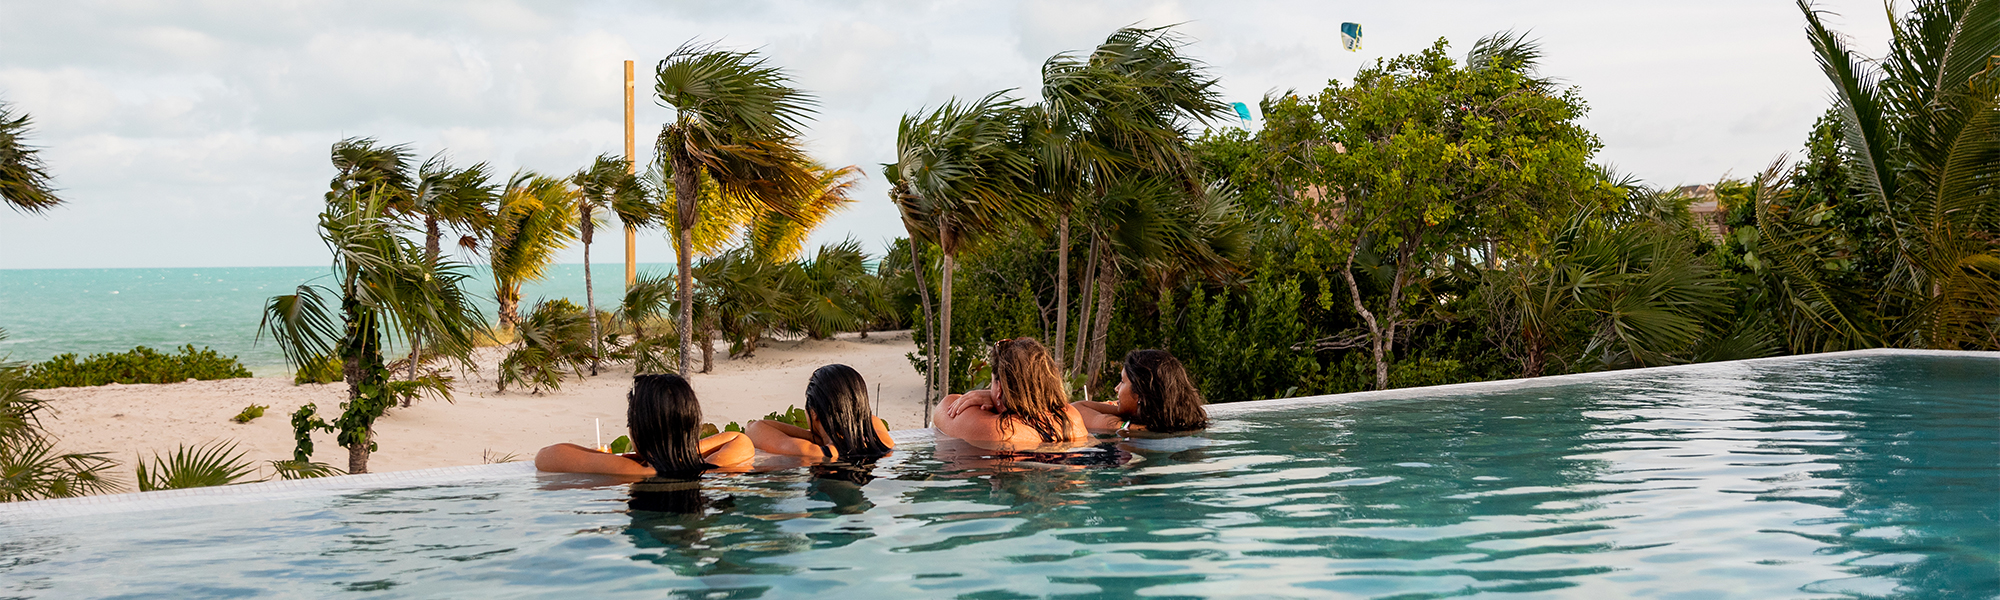 Four women in a swimming pool looking out over the ocean